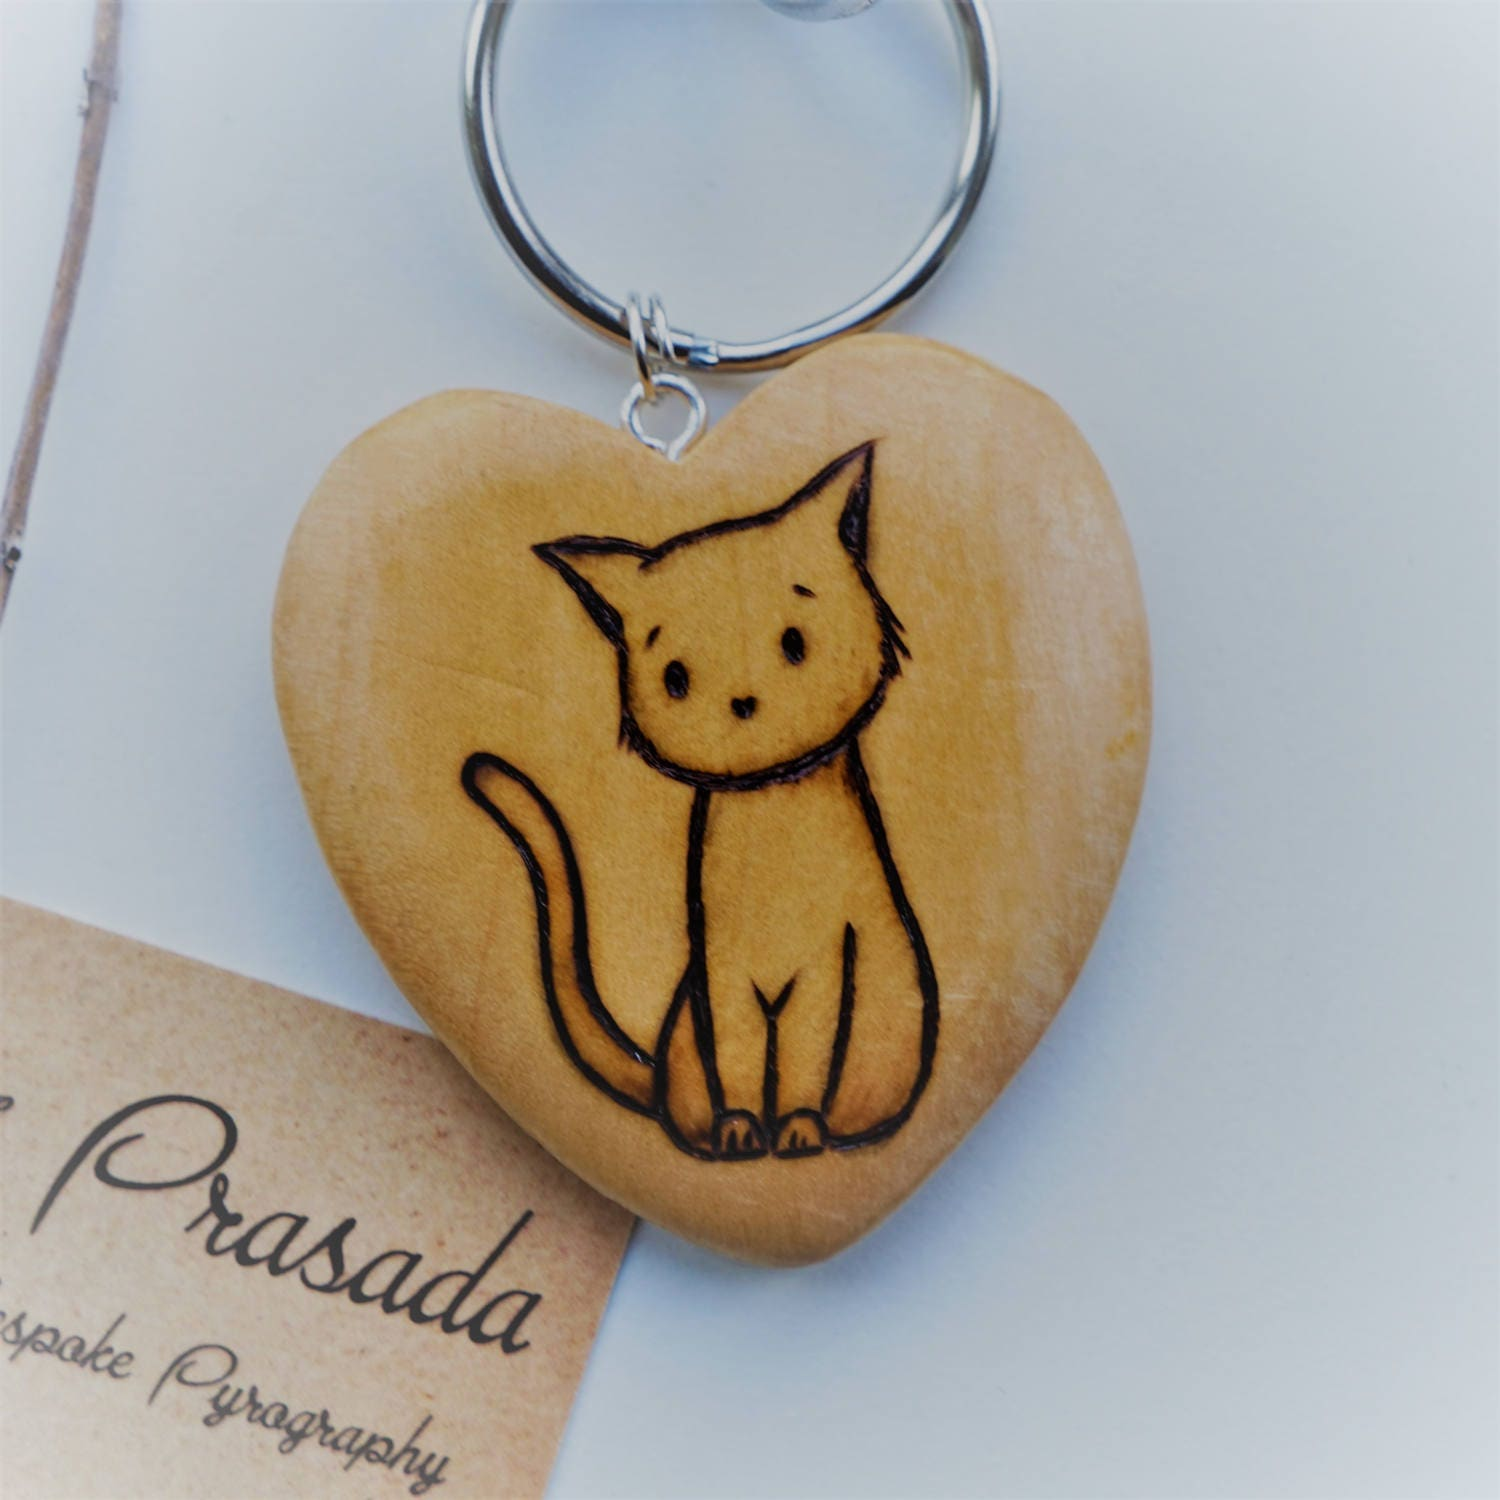 Cute Cat Keyring personalised keyring cat lovers gift cute cat gift crazy cat lady pet name cat key fob pyrography keyring cat art